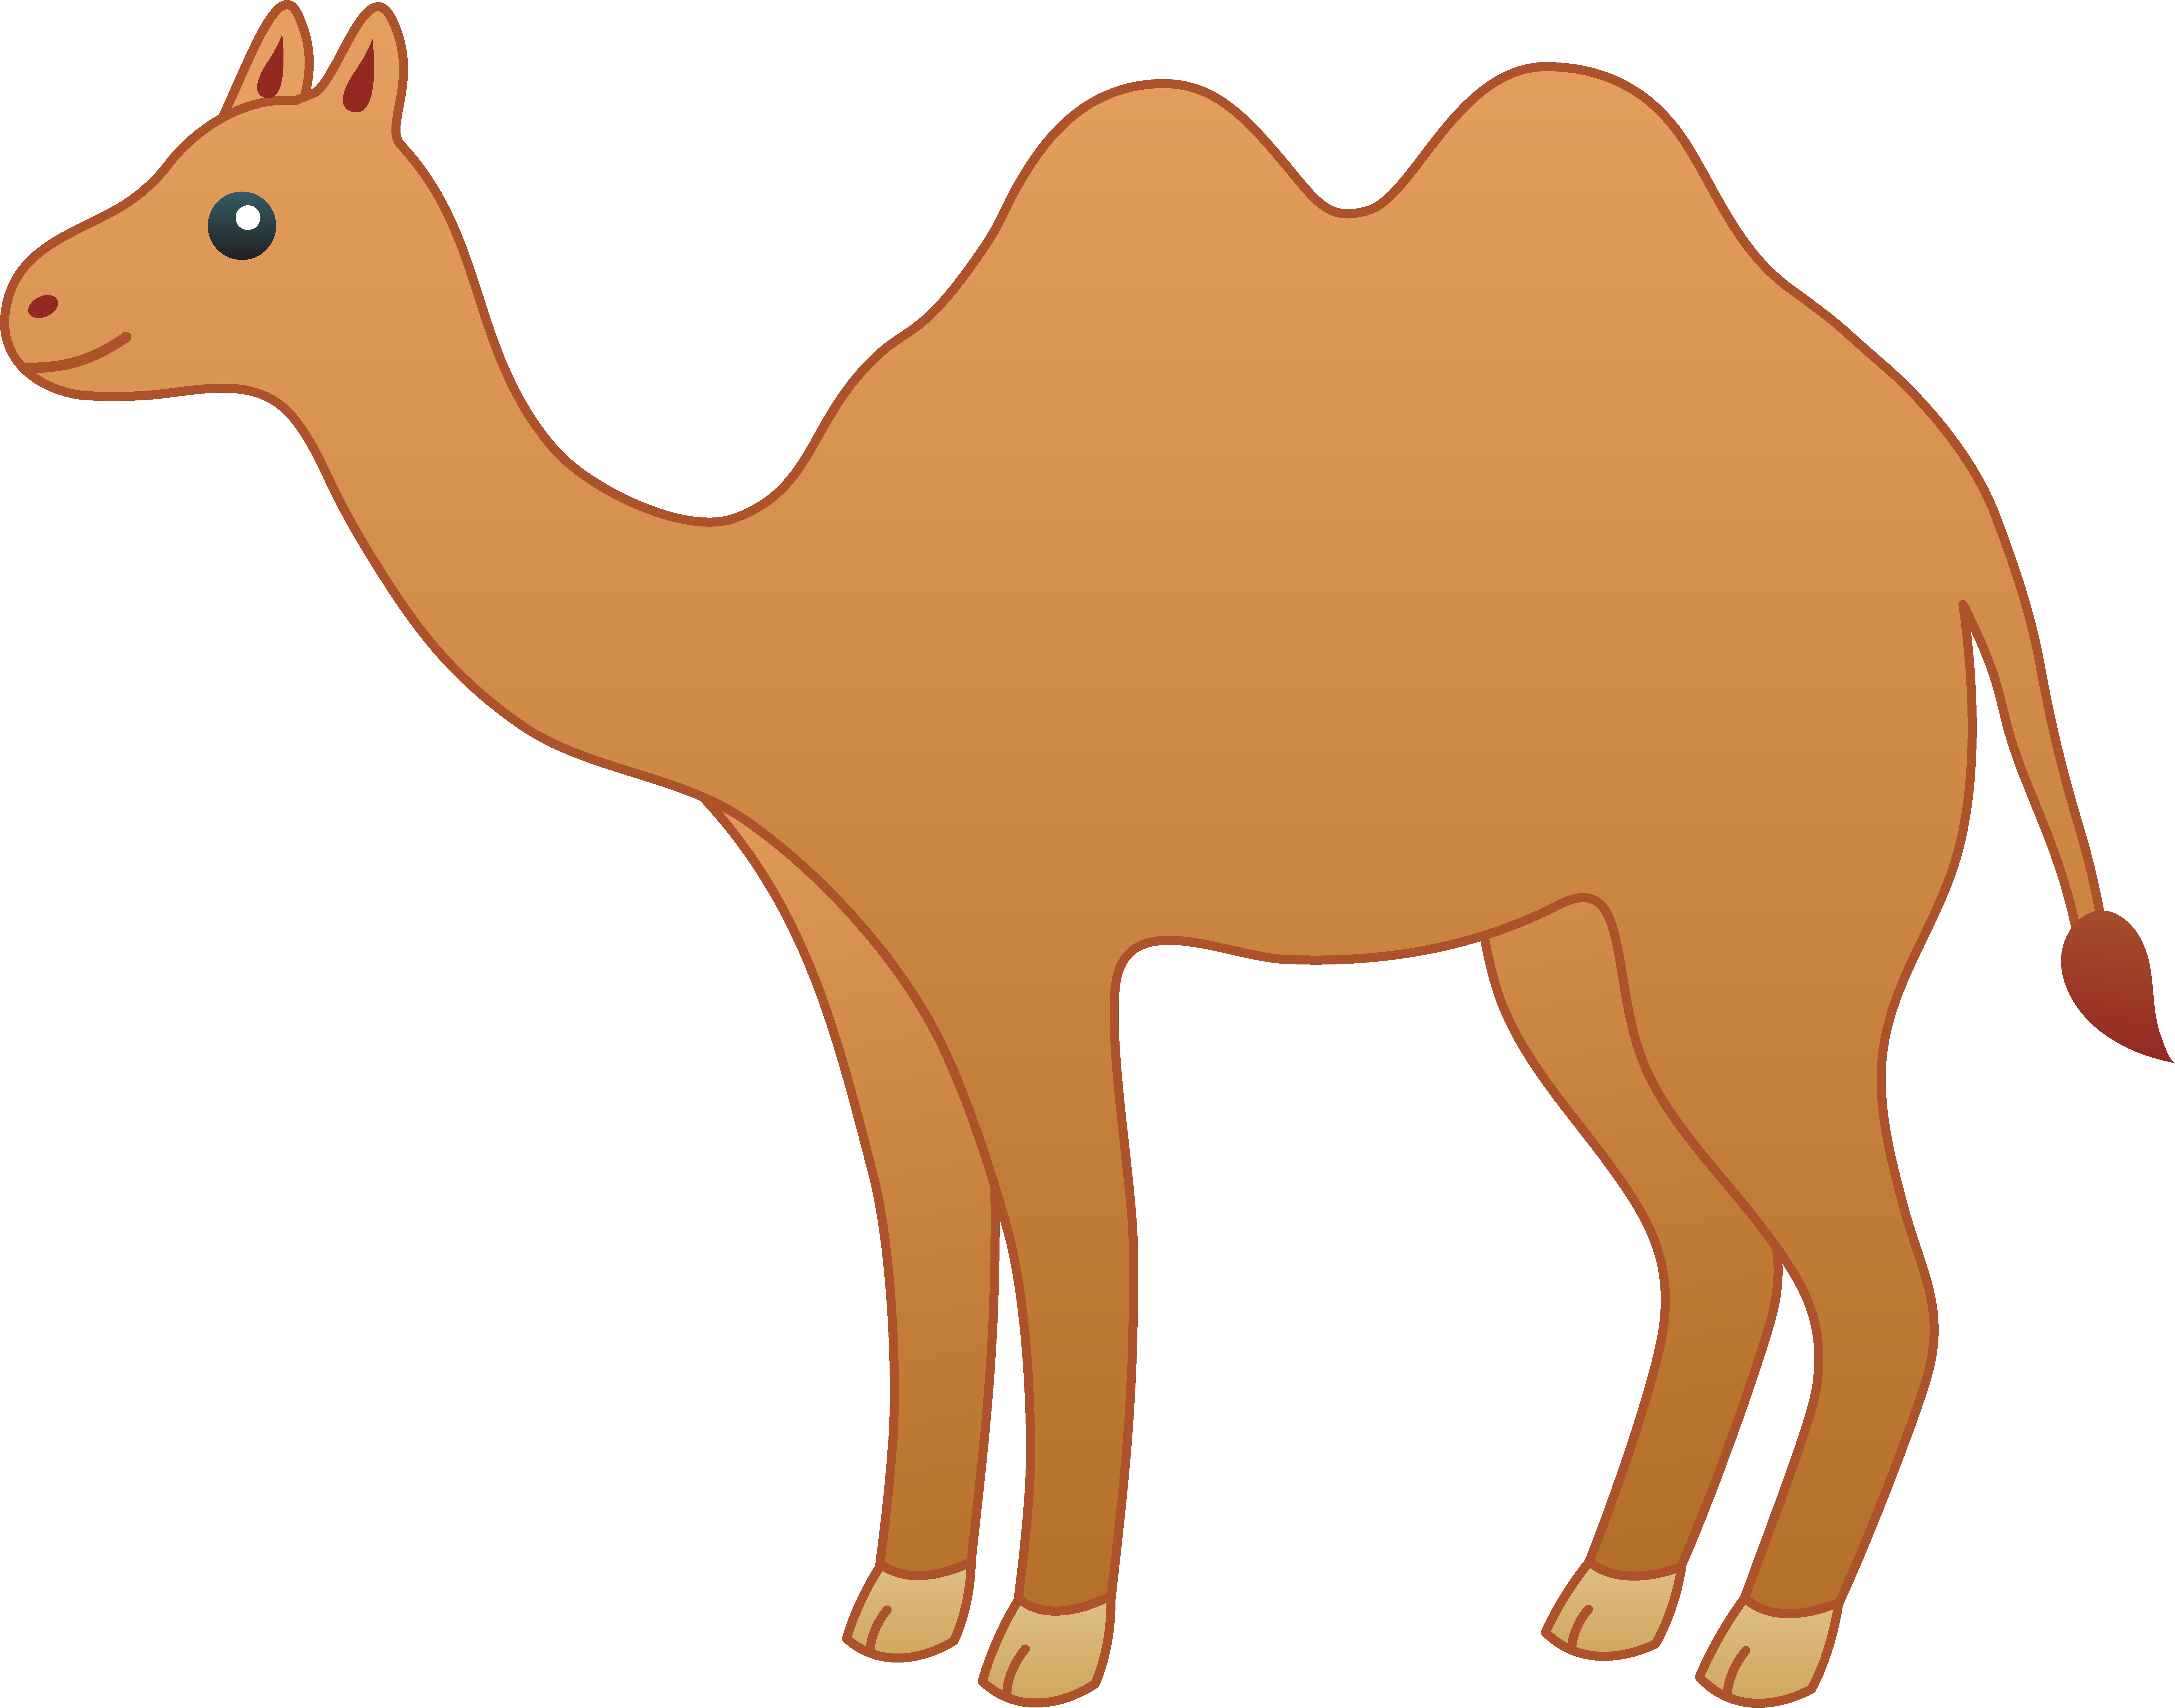 Camel clipart simple. Awesome design digital collection